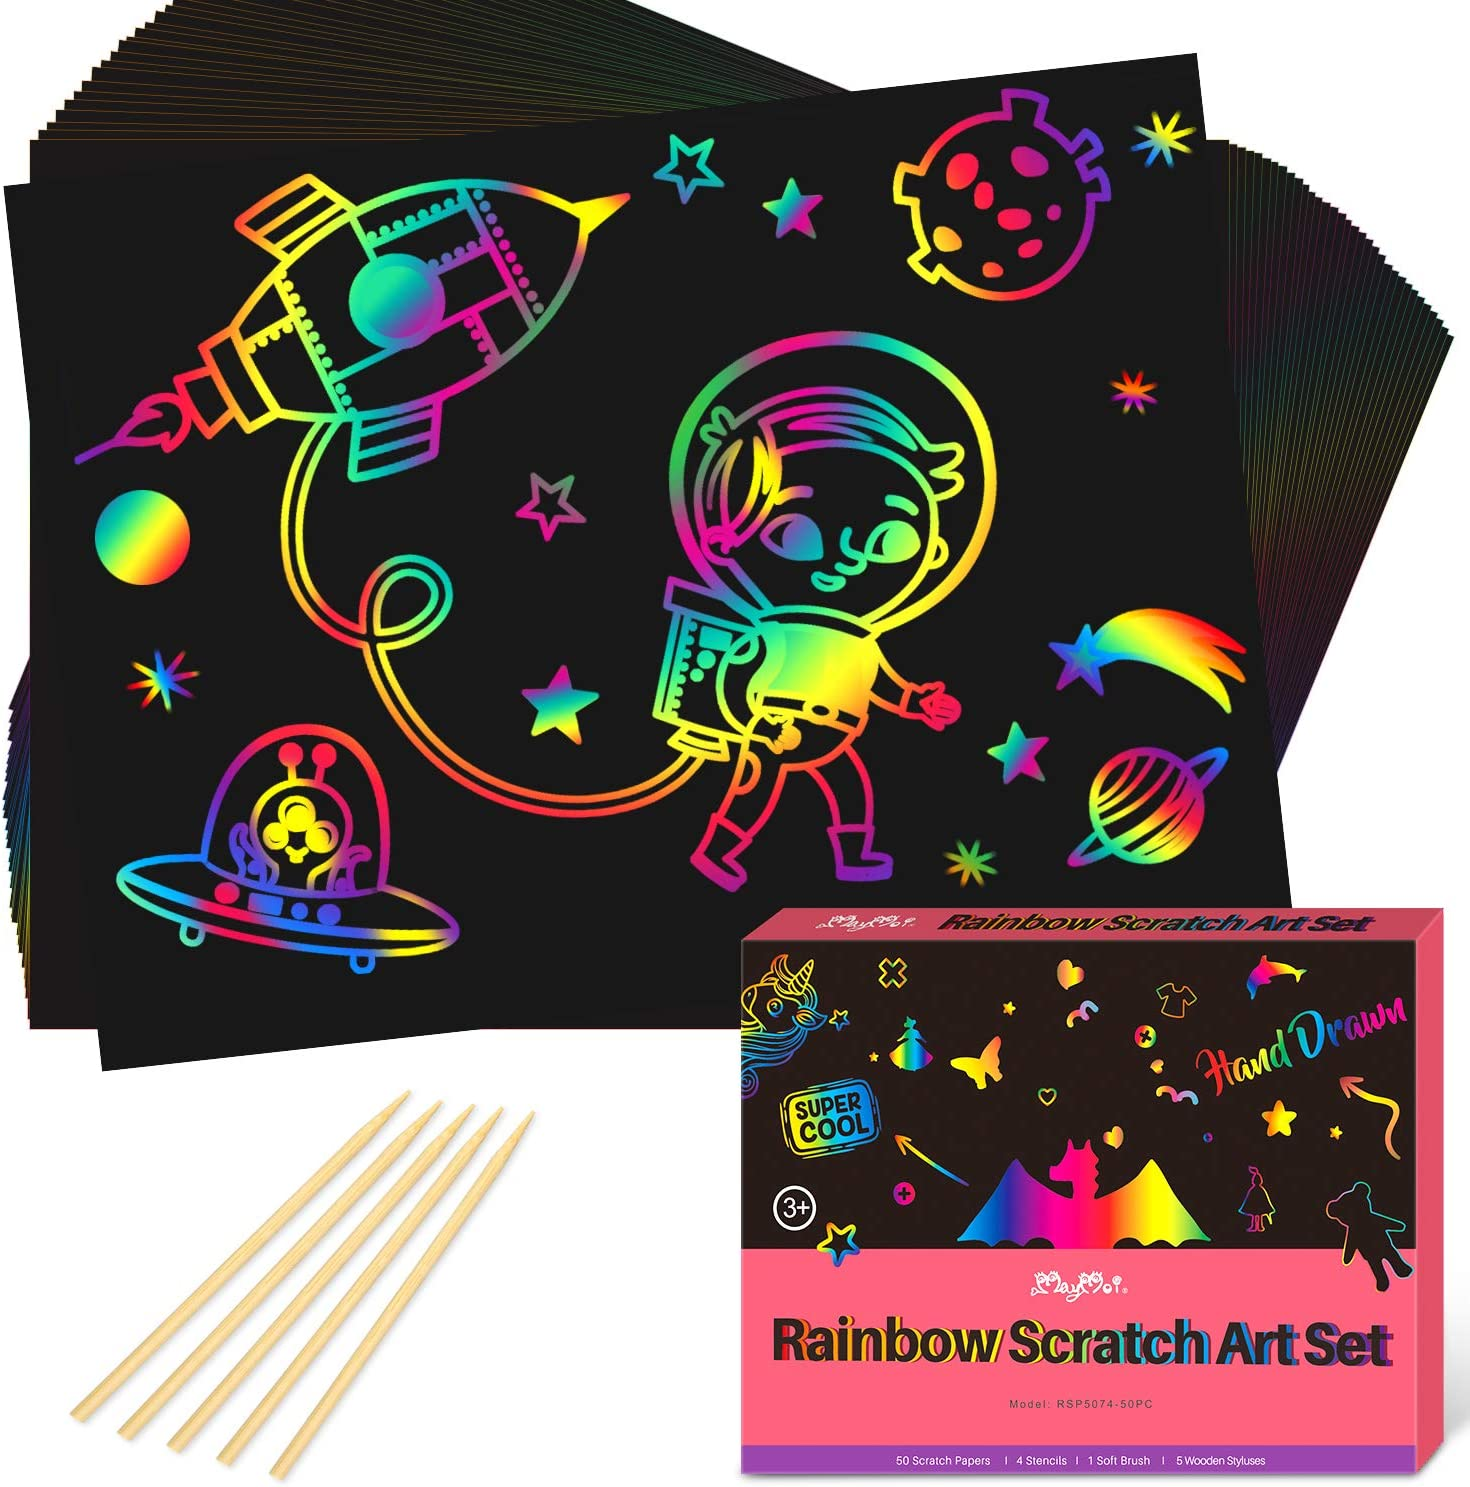 Scratch Art for Kids 60PCS Christmas Magic Rainbow Arts and Crafts Paper DIY Drawing Ornaments Black Cards Kit with 10 Wooden Stylus /& 60 Colorful Ribbon for Xmas,Birthday Party Decorations Supplies